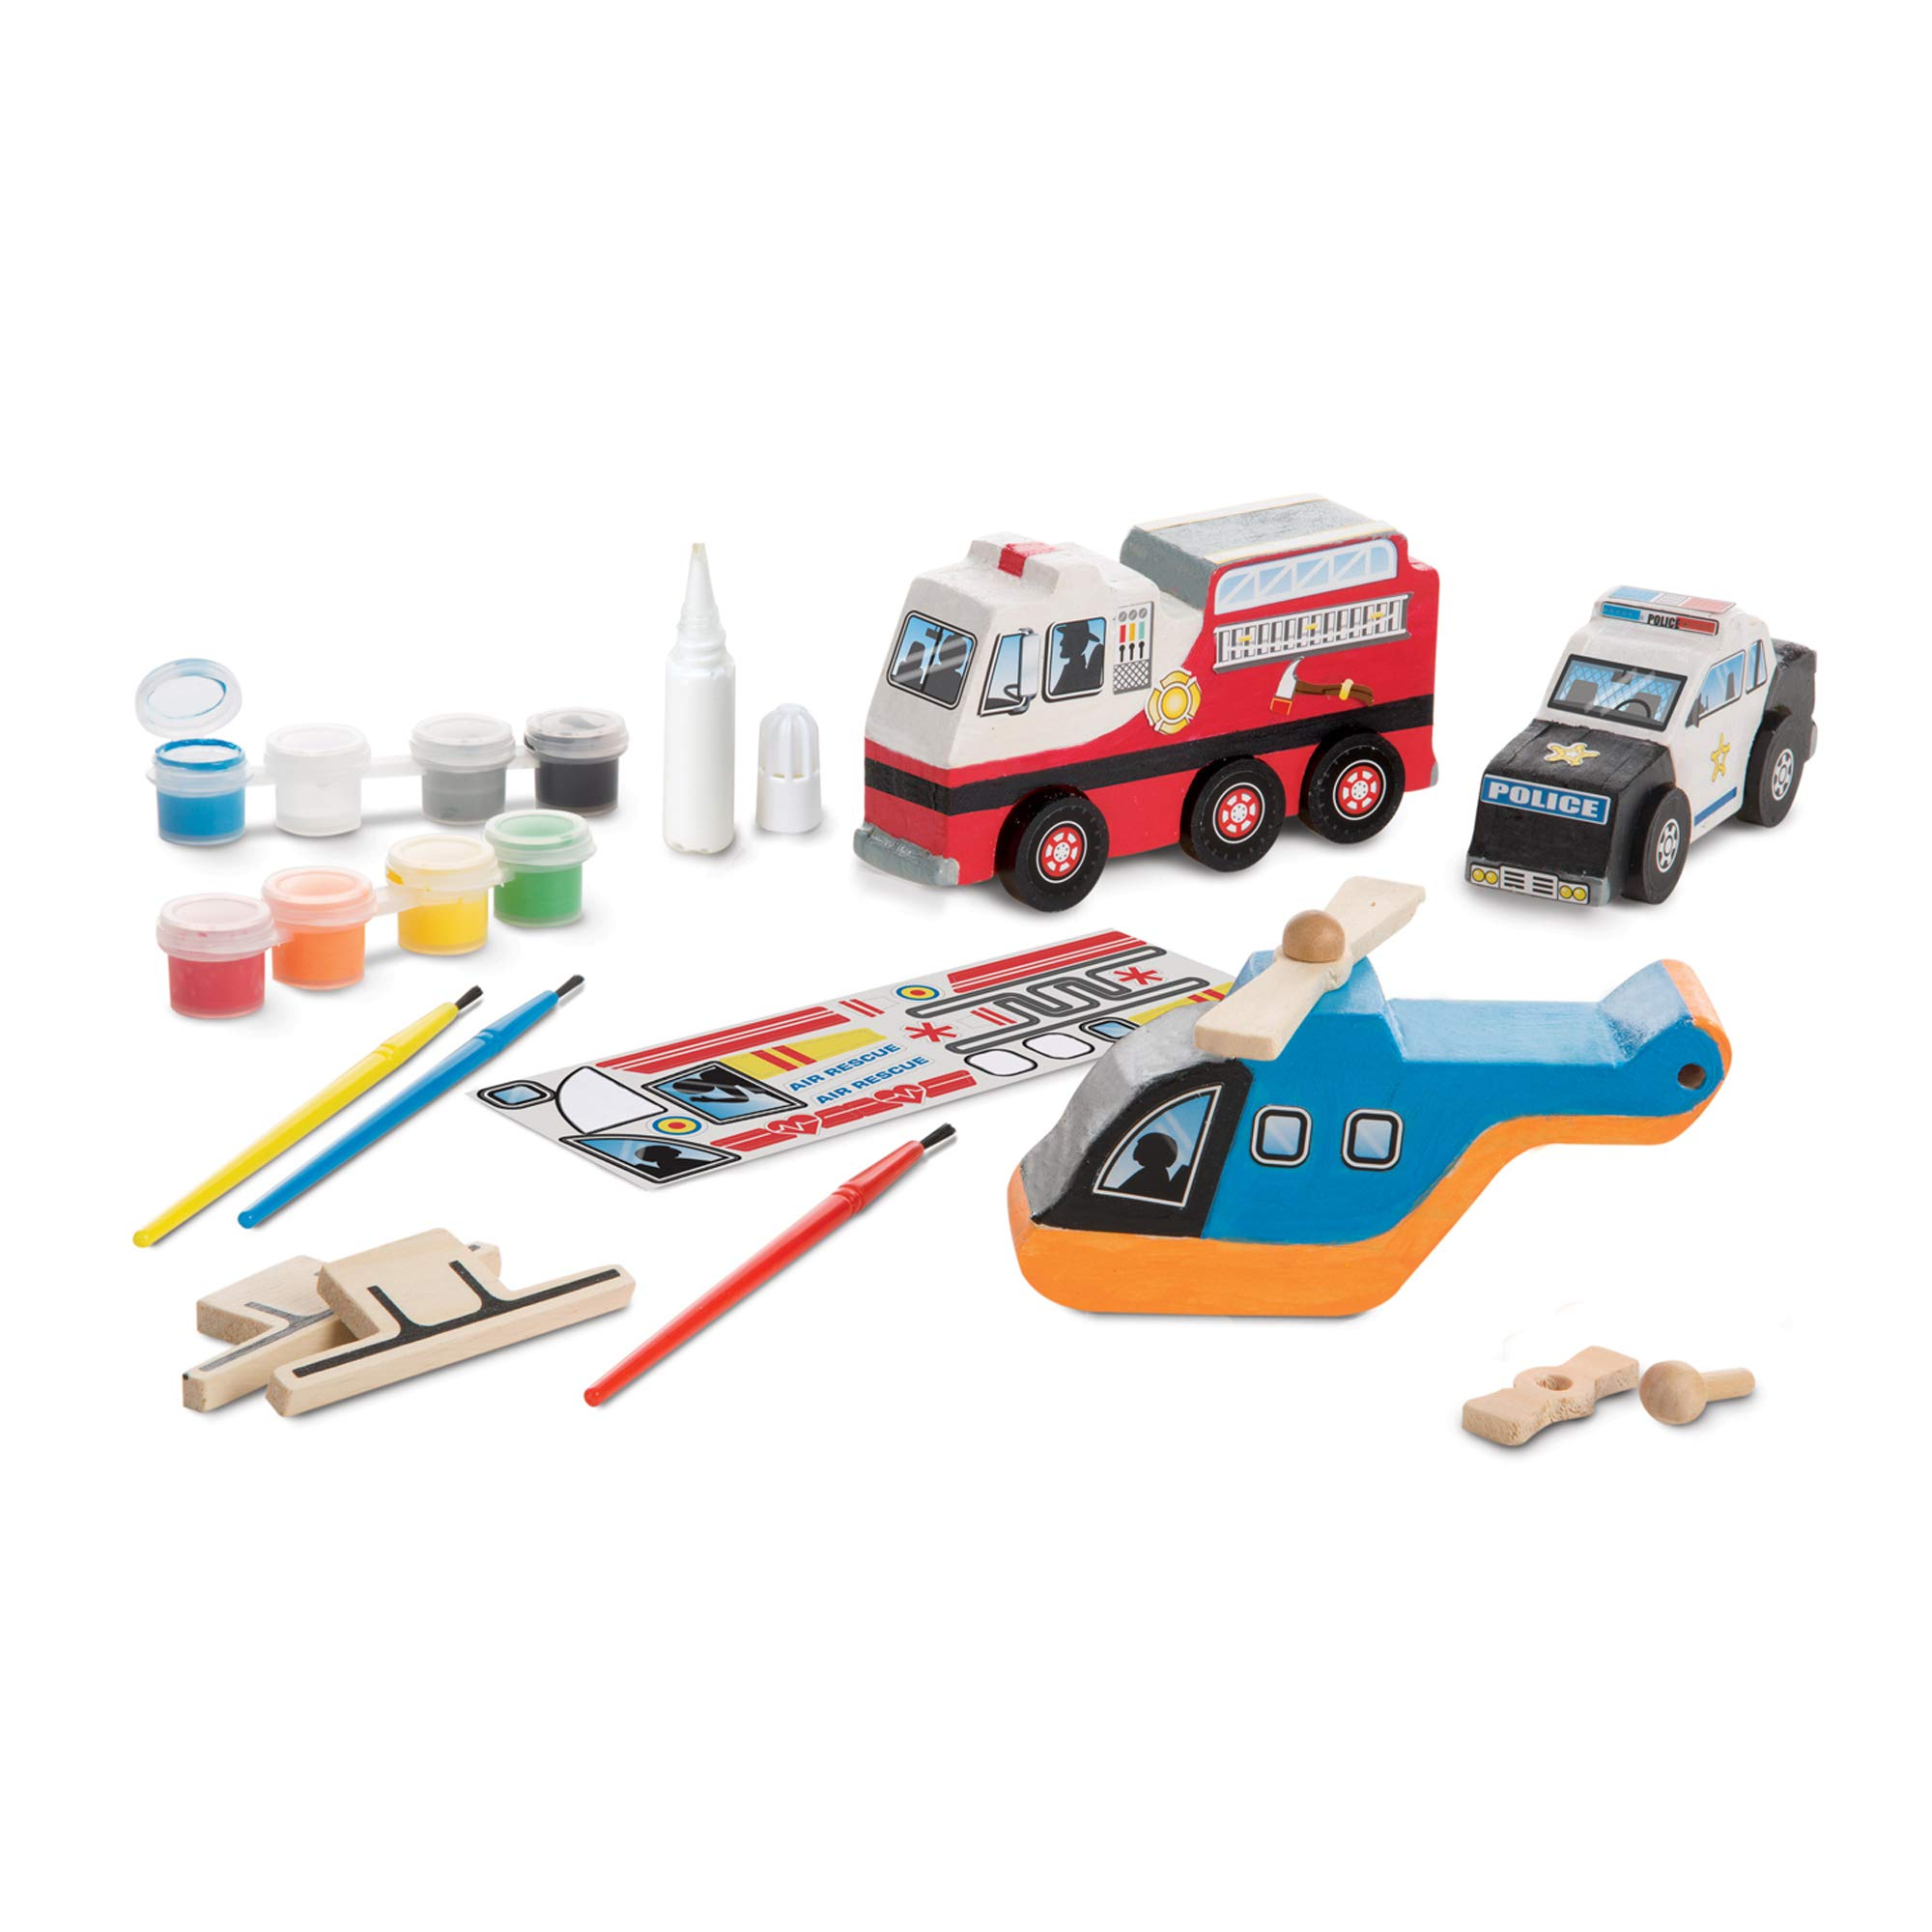 Melissa & Doug Created by Me! Rescue Vehicles Wooden Craft Kit - The Original (Decorate a Police Car, Fire Truck, Helicopter, Great Gift for Girls and Boys – Best for 4, 5, 6, 7 and 8 Year Olds)